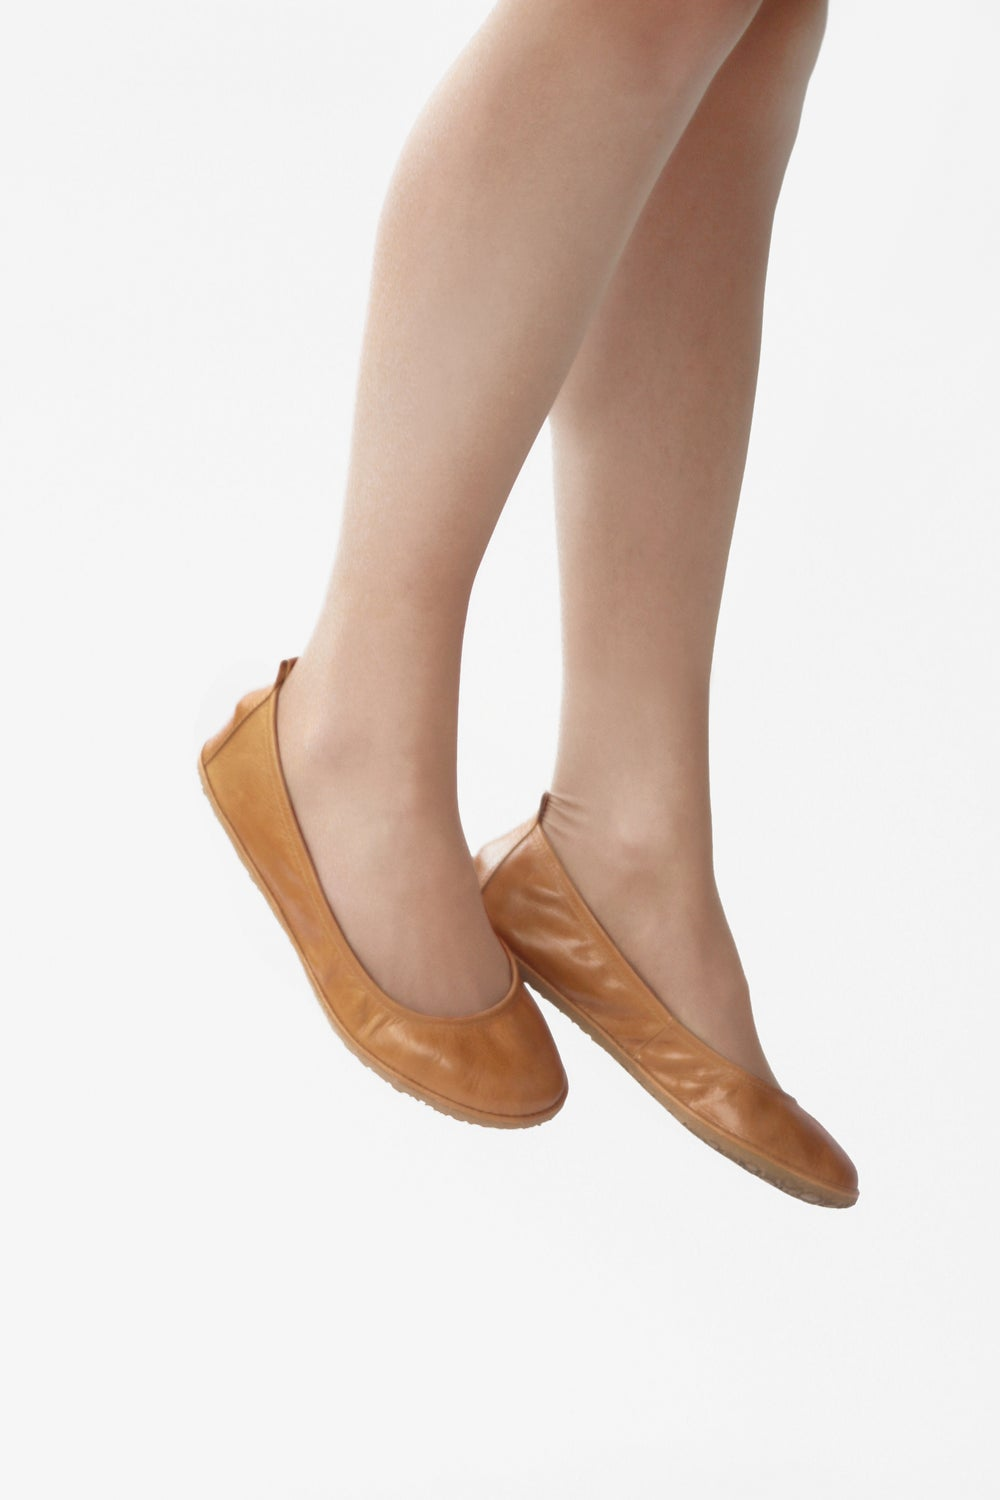 Image of Eko ballet flats in Glorious Wheat